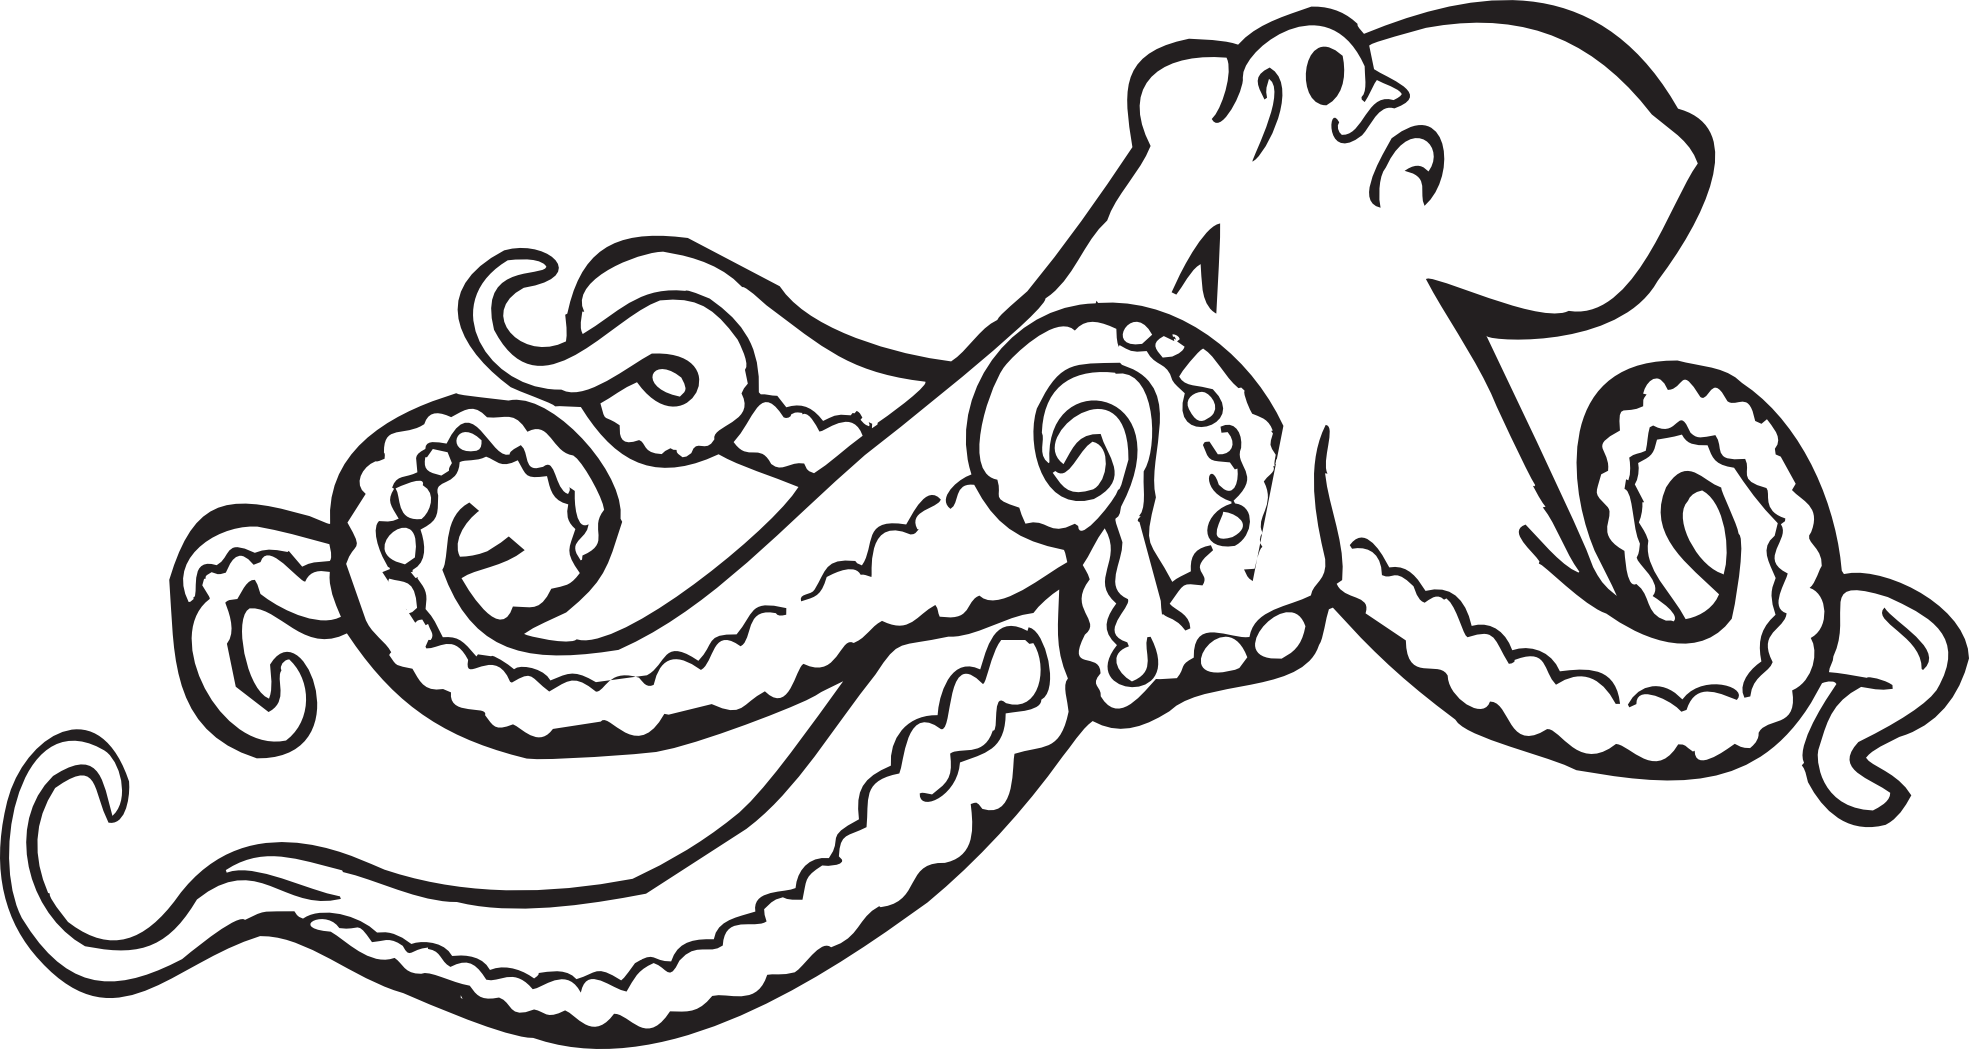 Foods Clipart Octopus Foods Octopus Transparent FREE For